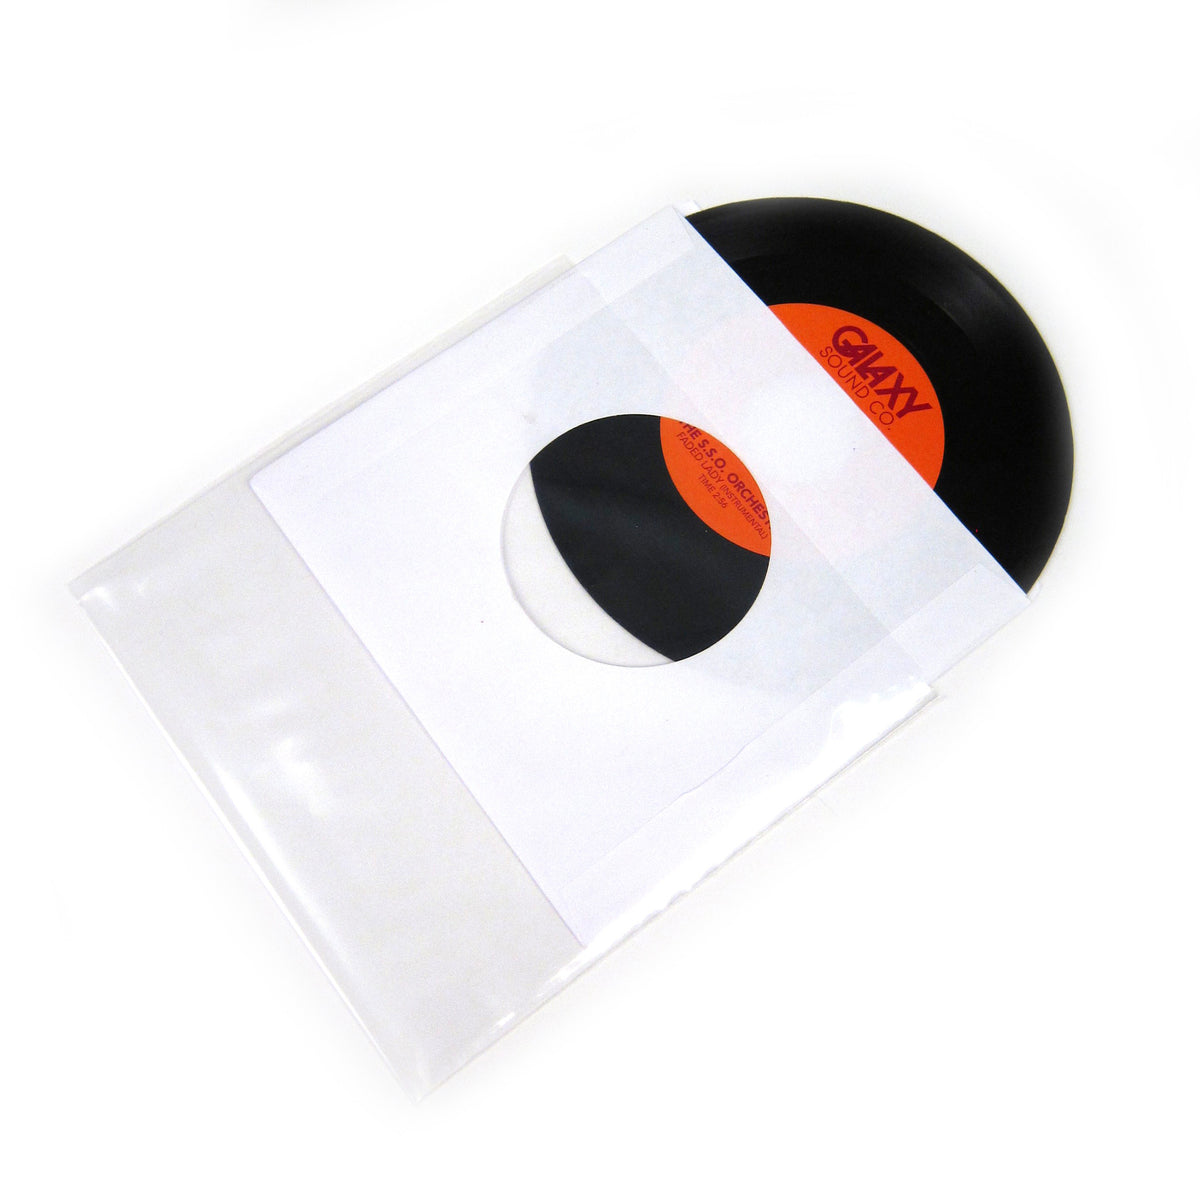 "Vinyl Styl: 7"" Poly Record Sleeve (50 Units)"